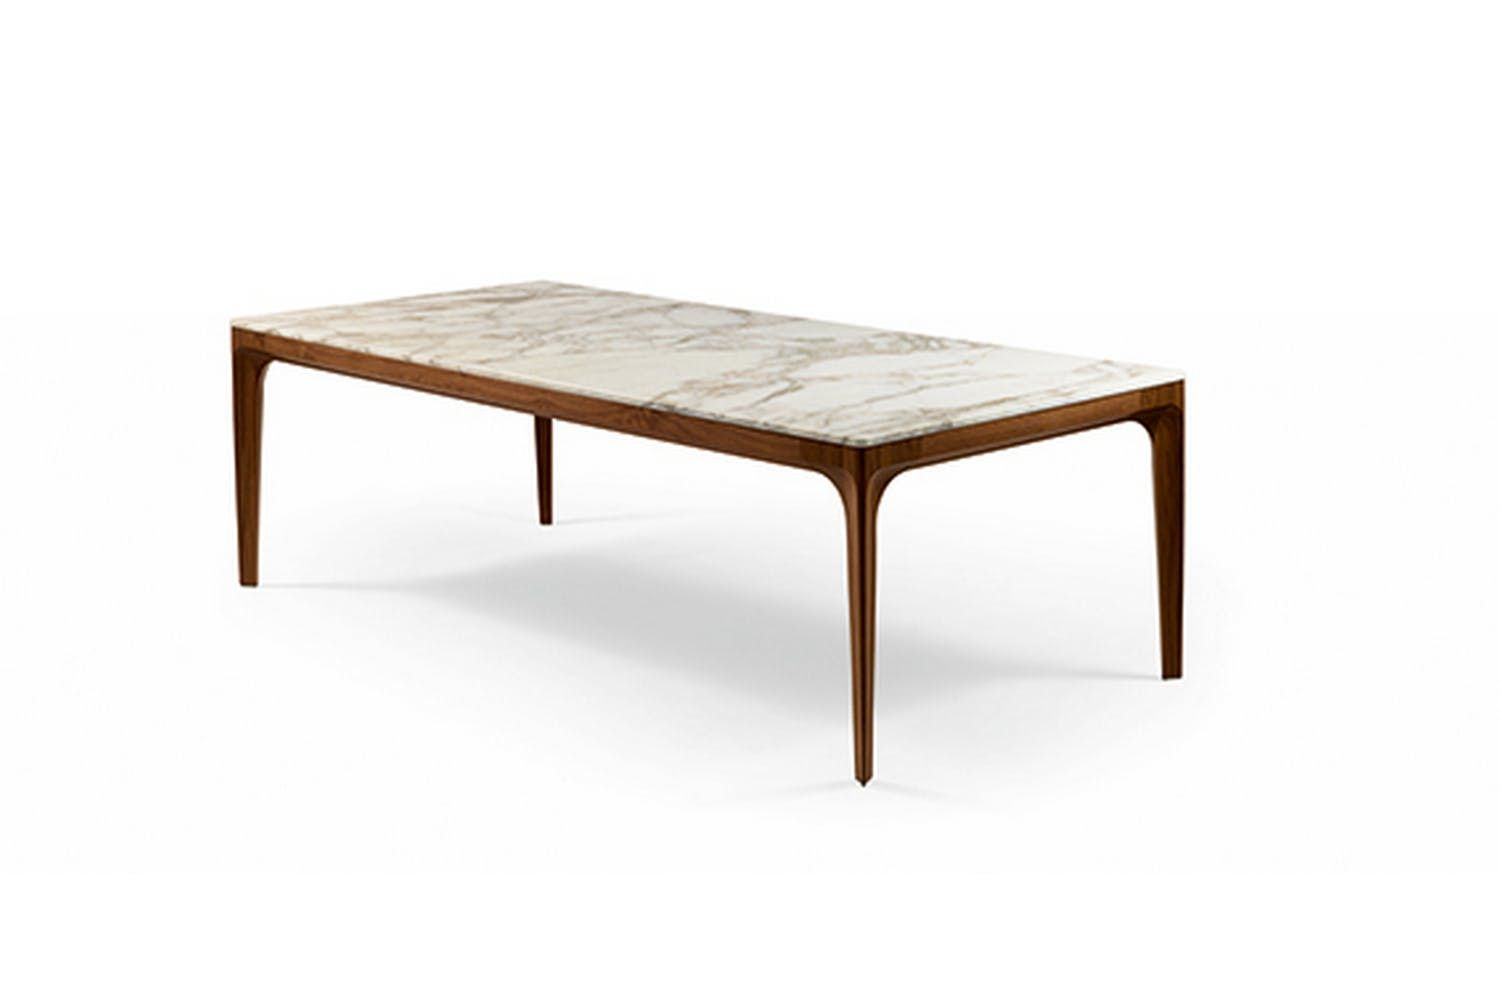 Anteo Table by Carlo Colombo for Furniture